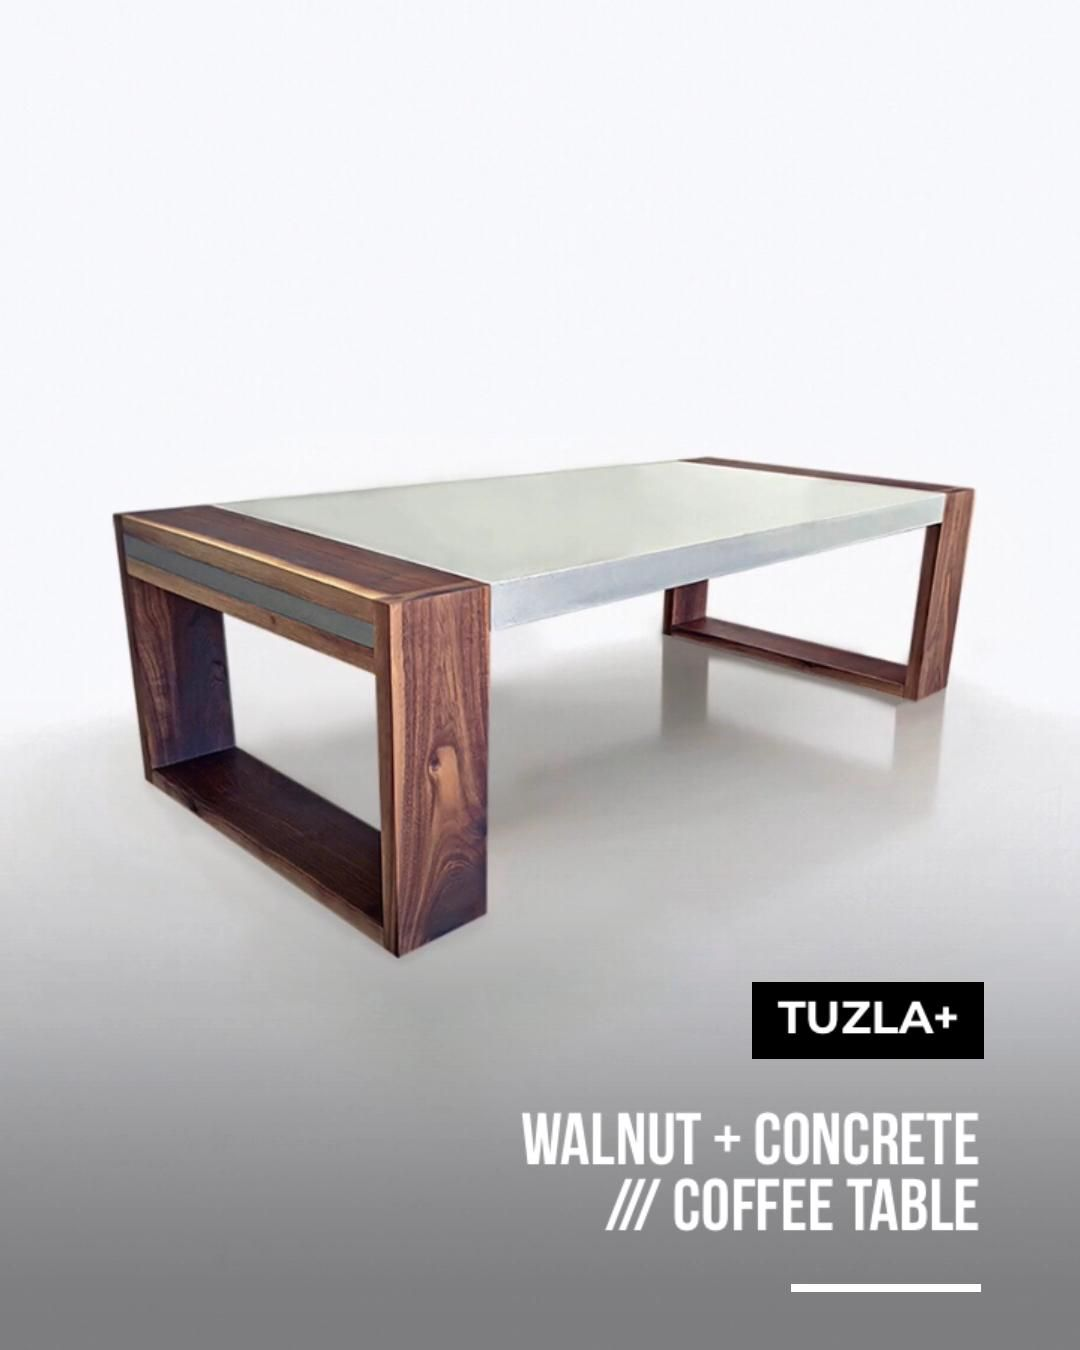 Contemporary Modern Coffee Table Walnut Concrete By Float Video Coffee Table Furniture Table Design [ 1350 x 1080 Pixel ]